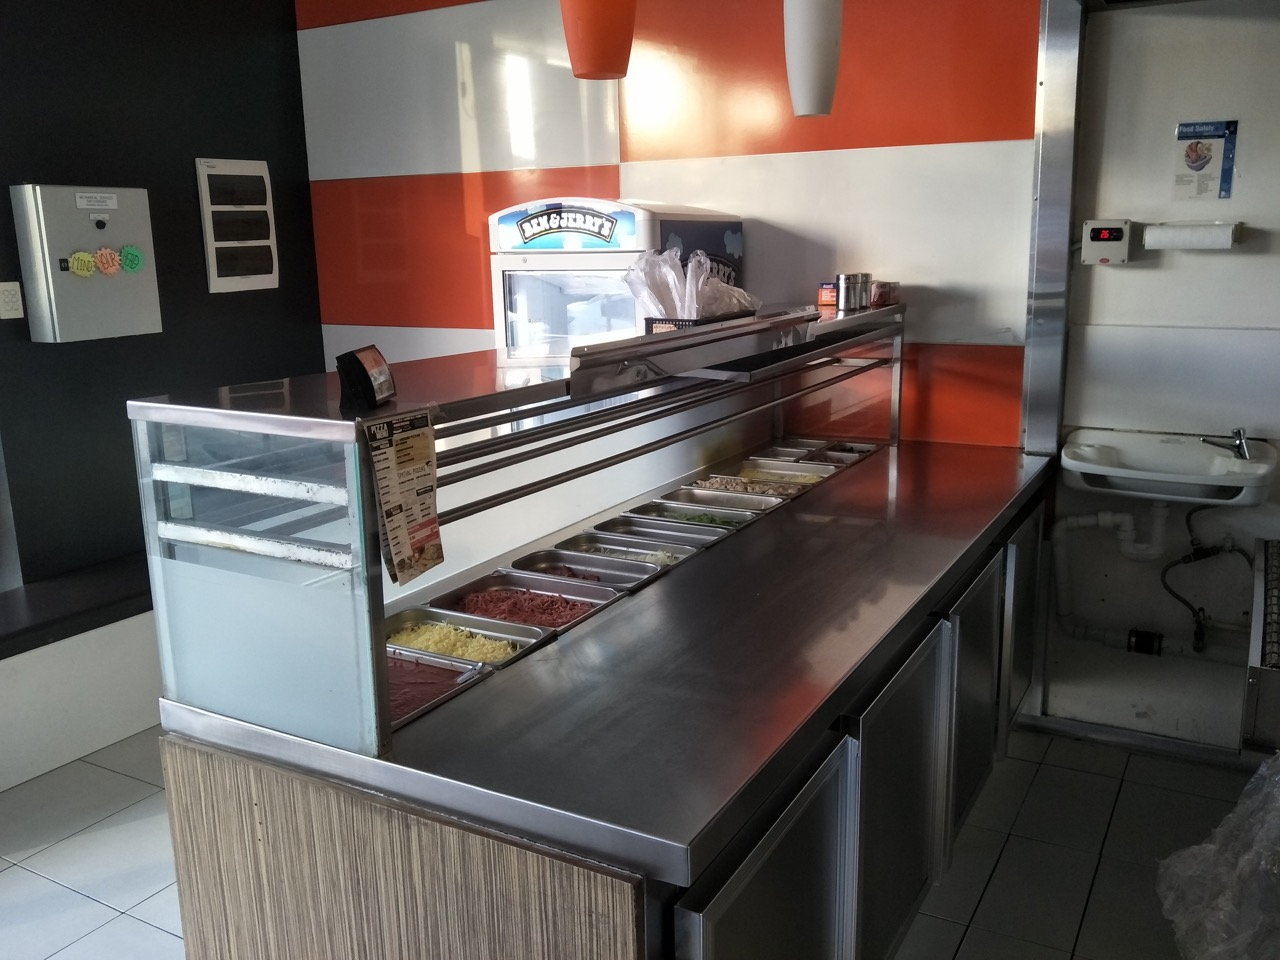 Pizza shop for sale, great location, selling under set up cost